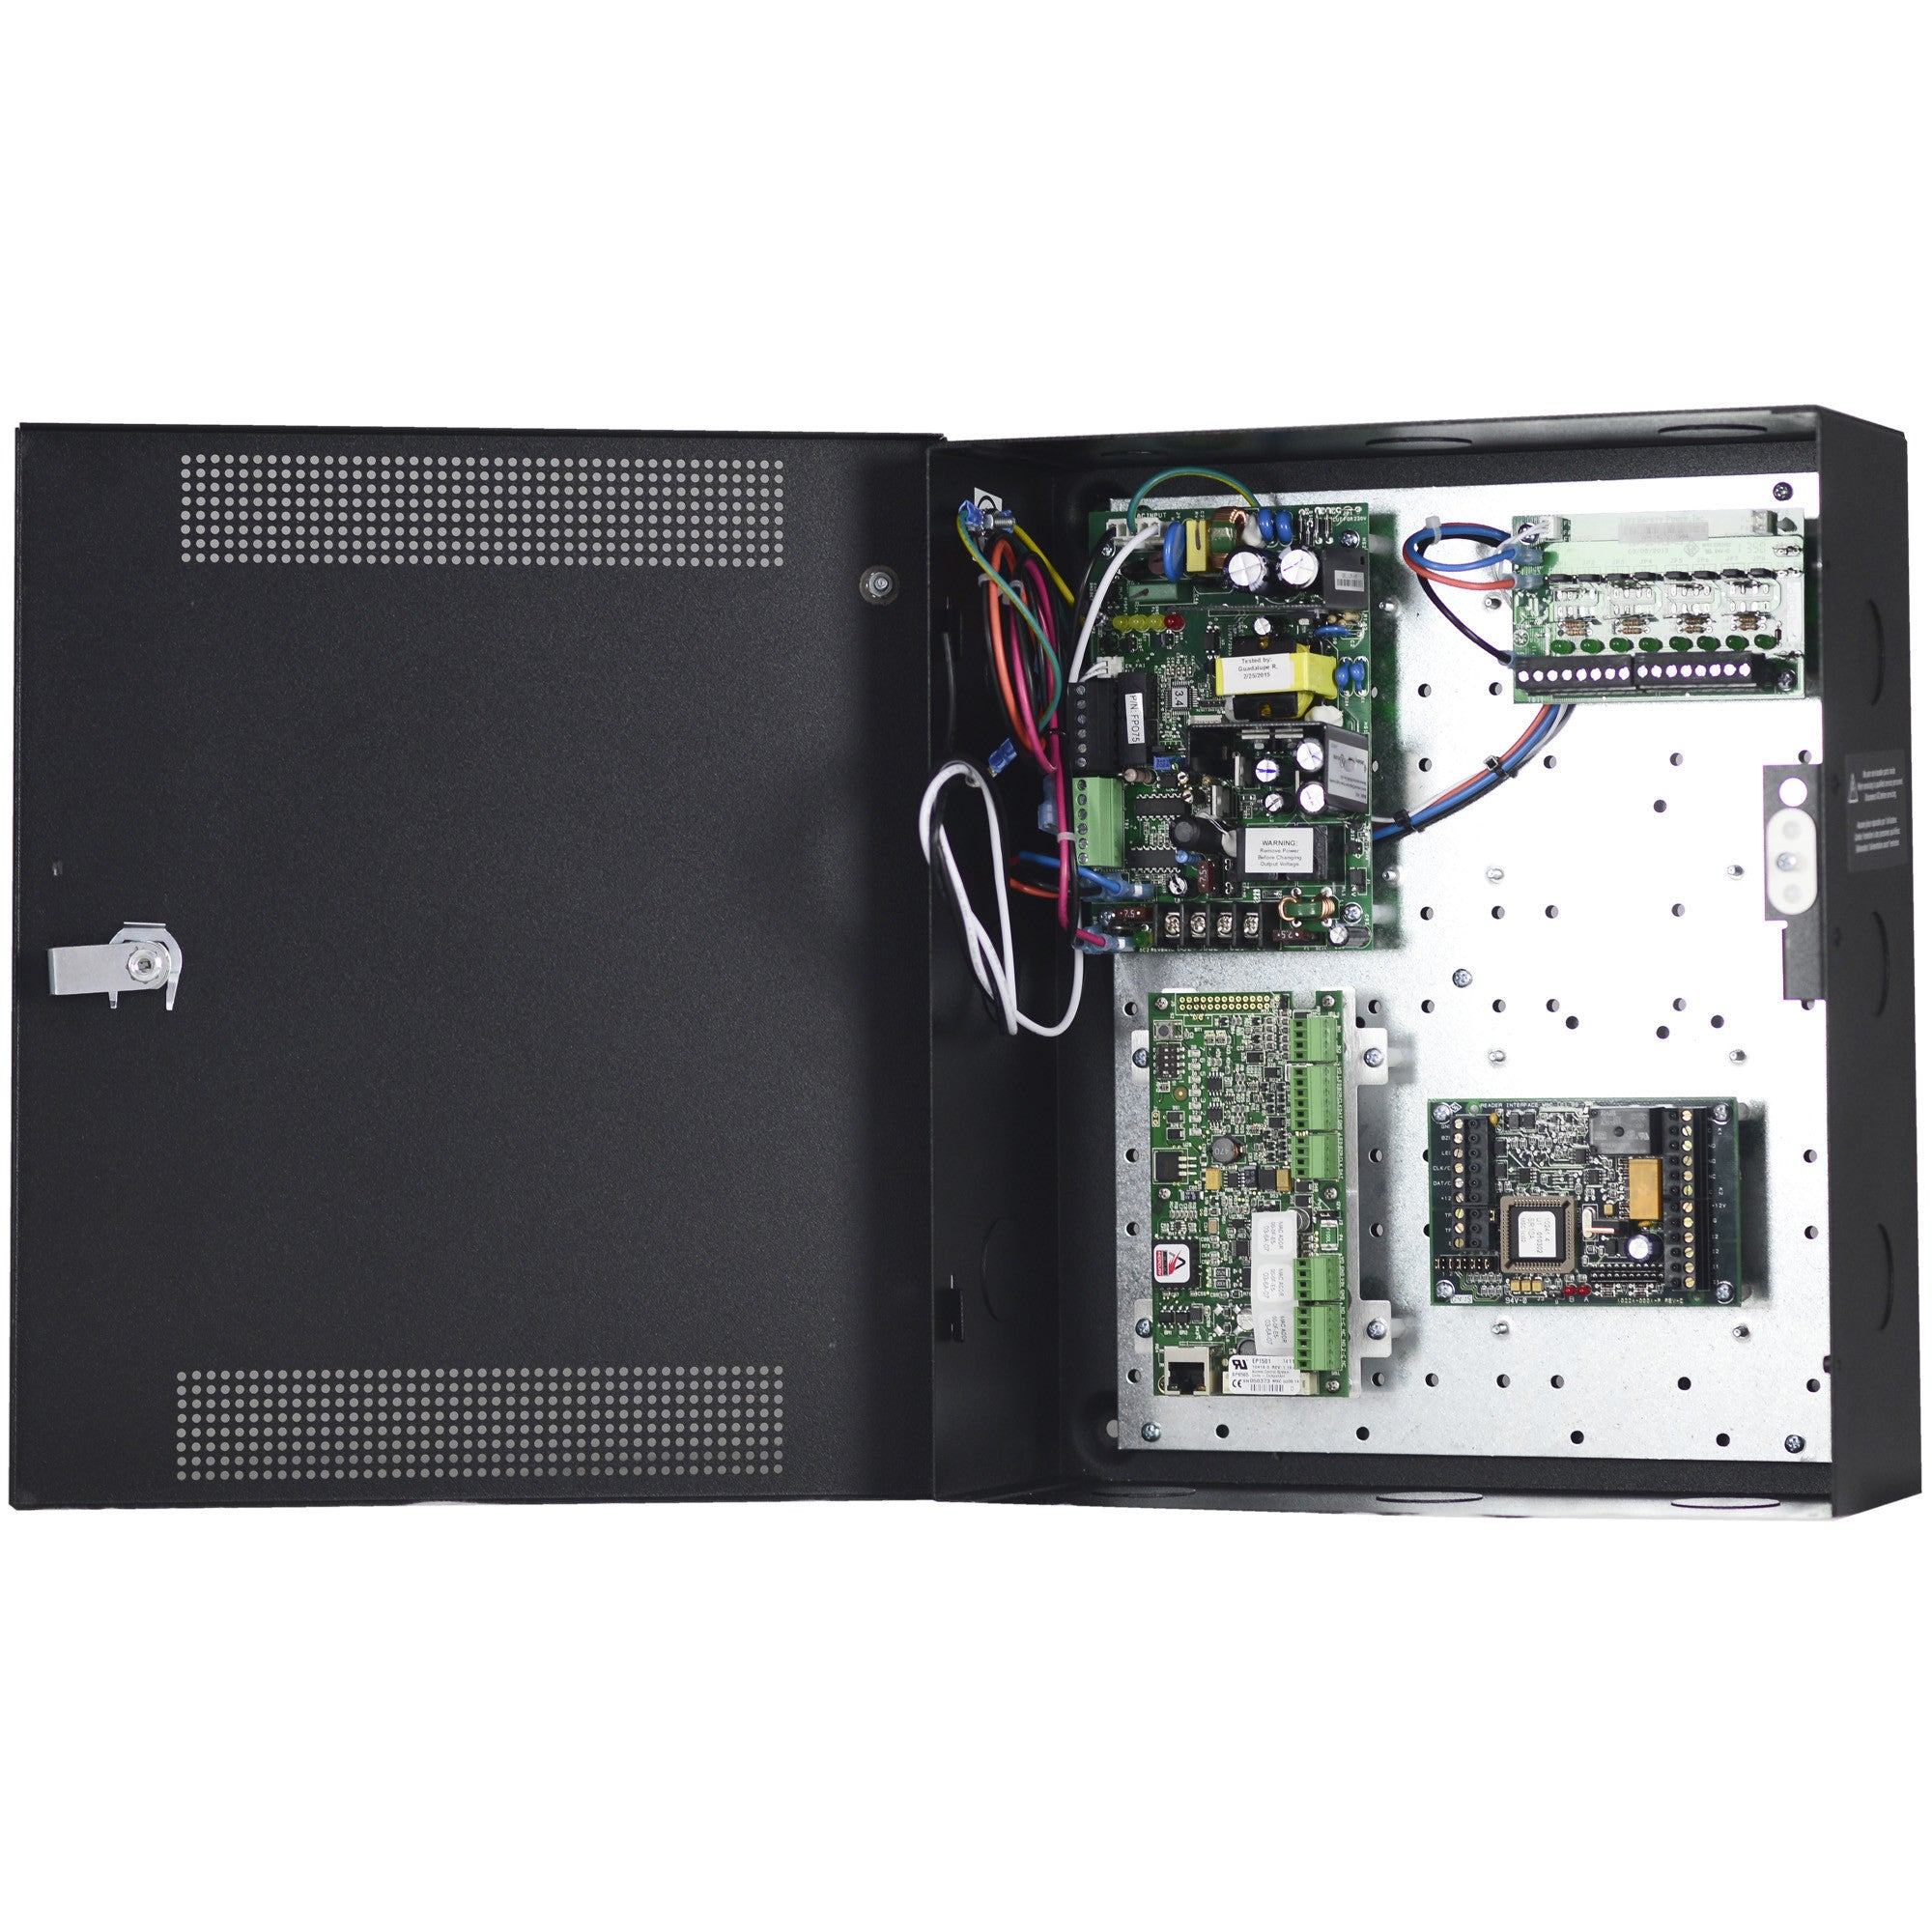 Lockstate 2 Door Access Control System with Enclosure and Power ...